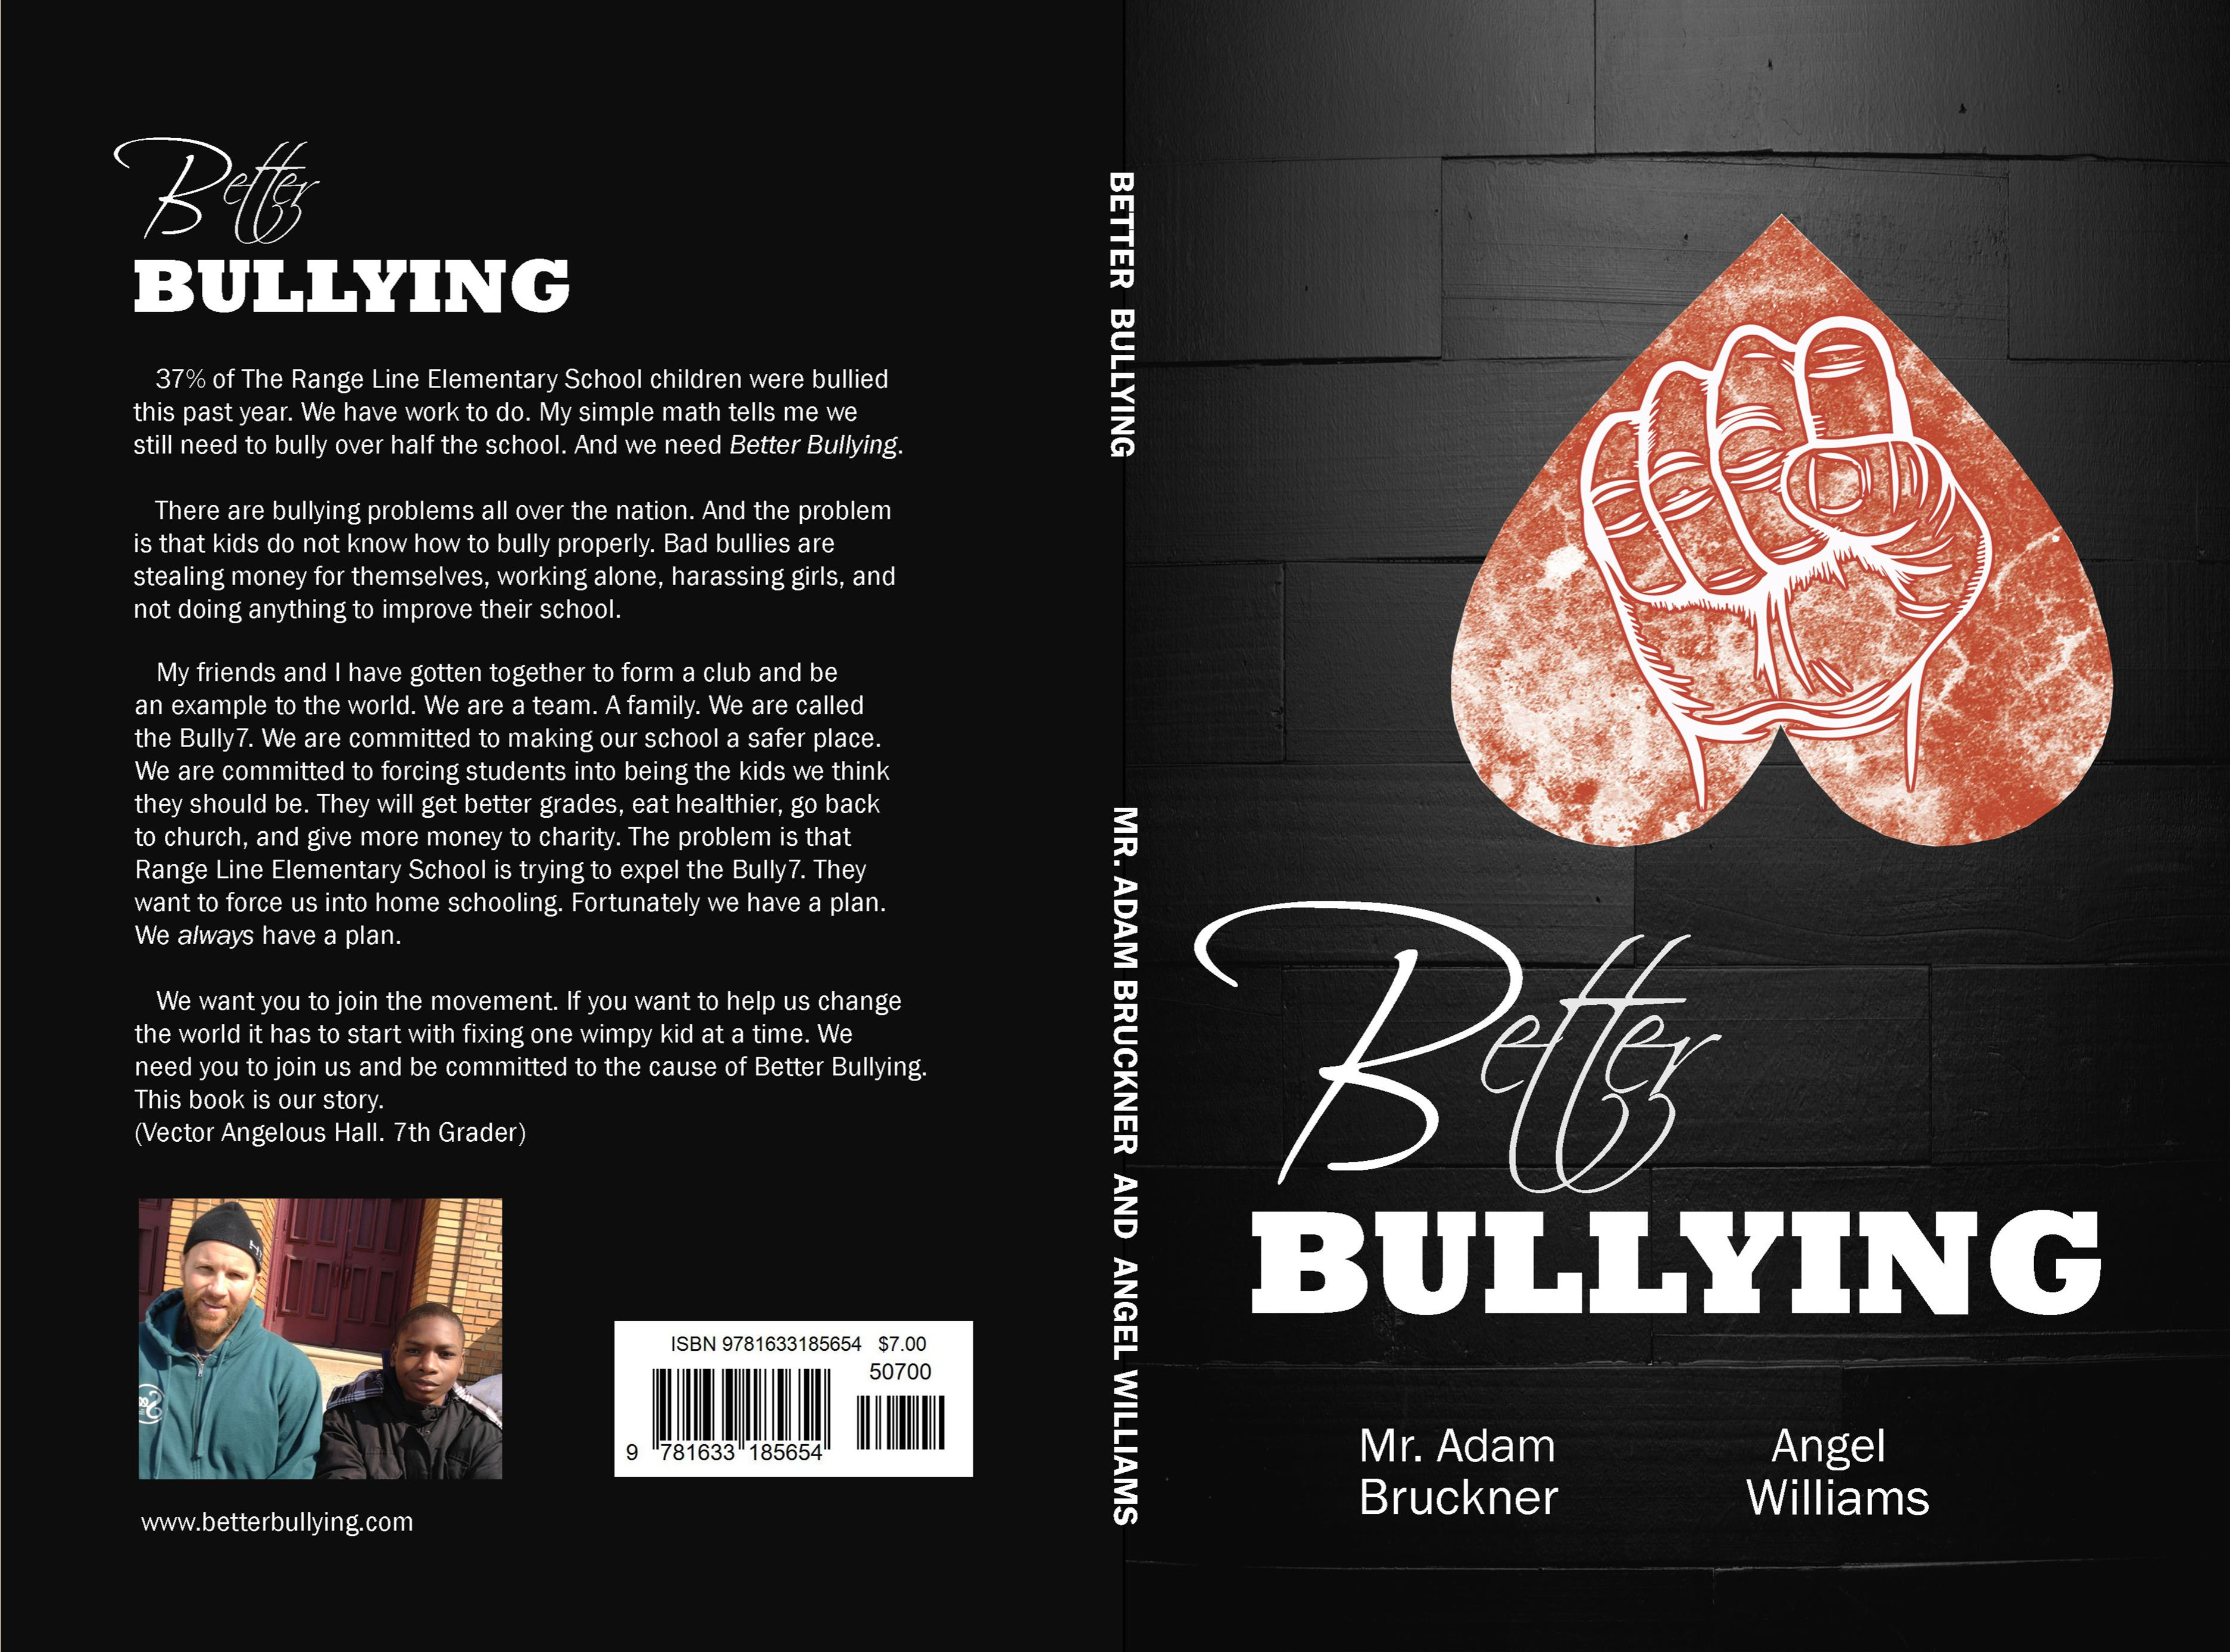 Better Bullying cover image